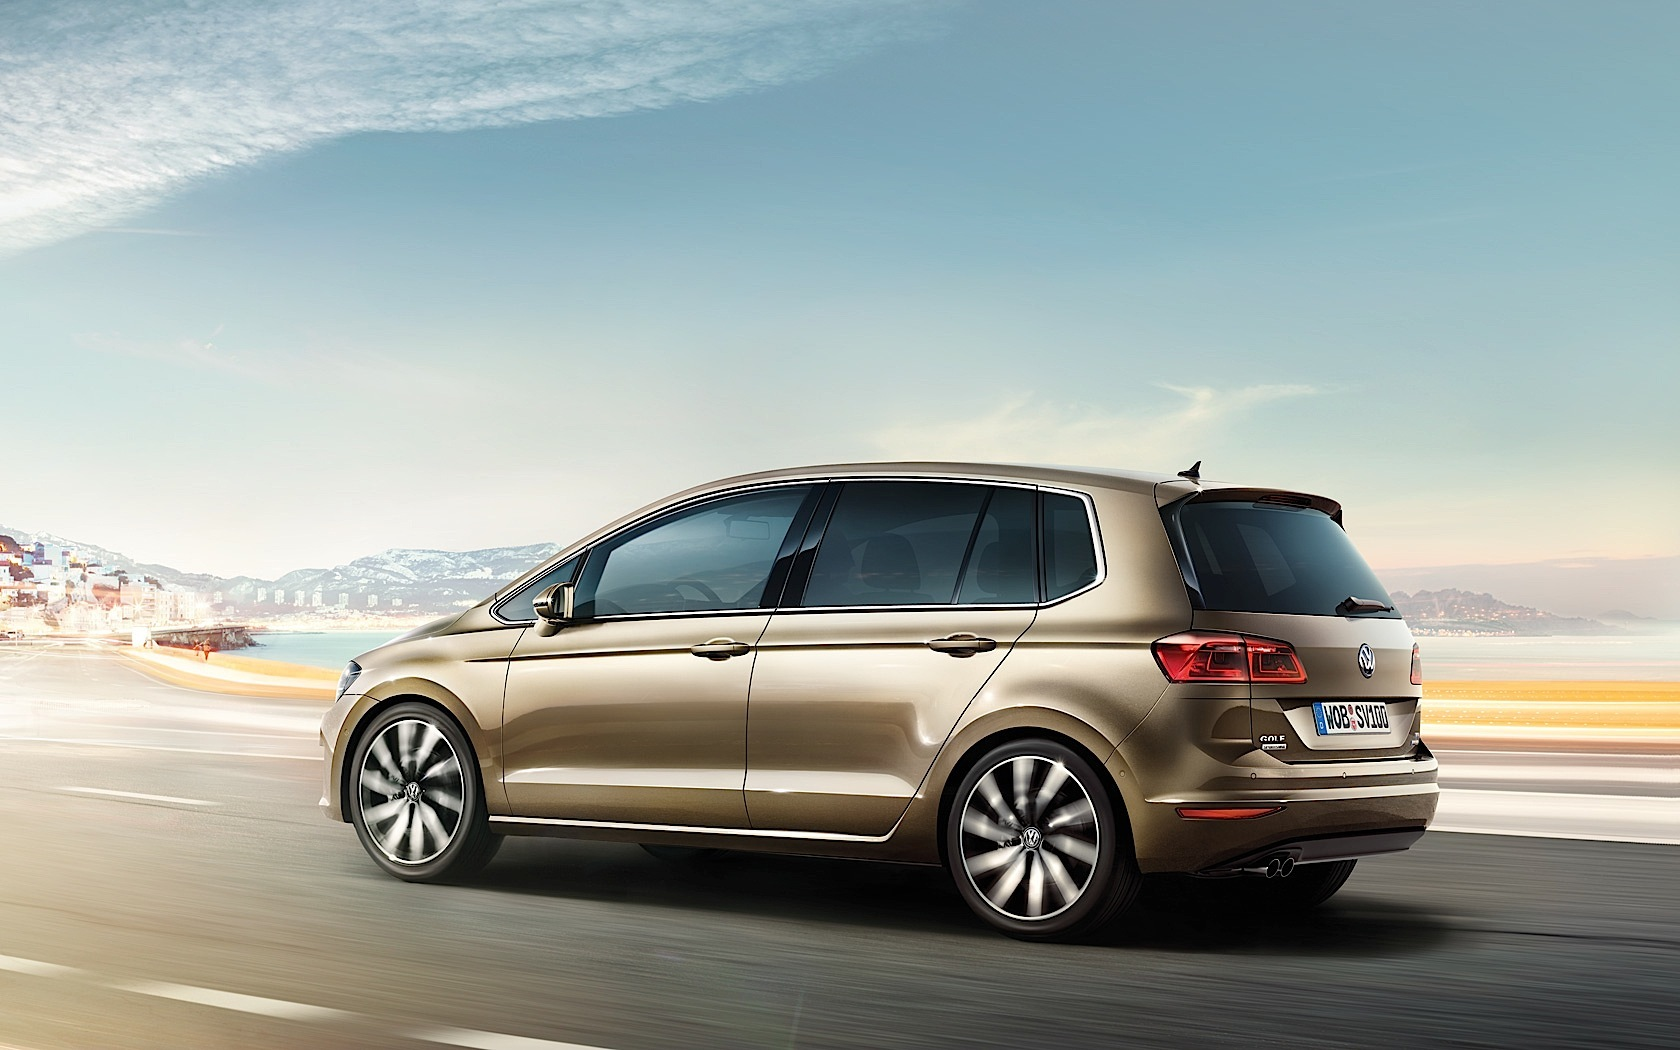 volkswagen golf sportsvan specs 2014 2015 2016 2017 autoevolution. Black Bedroom Furniture Sets. Home Design Ideas